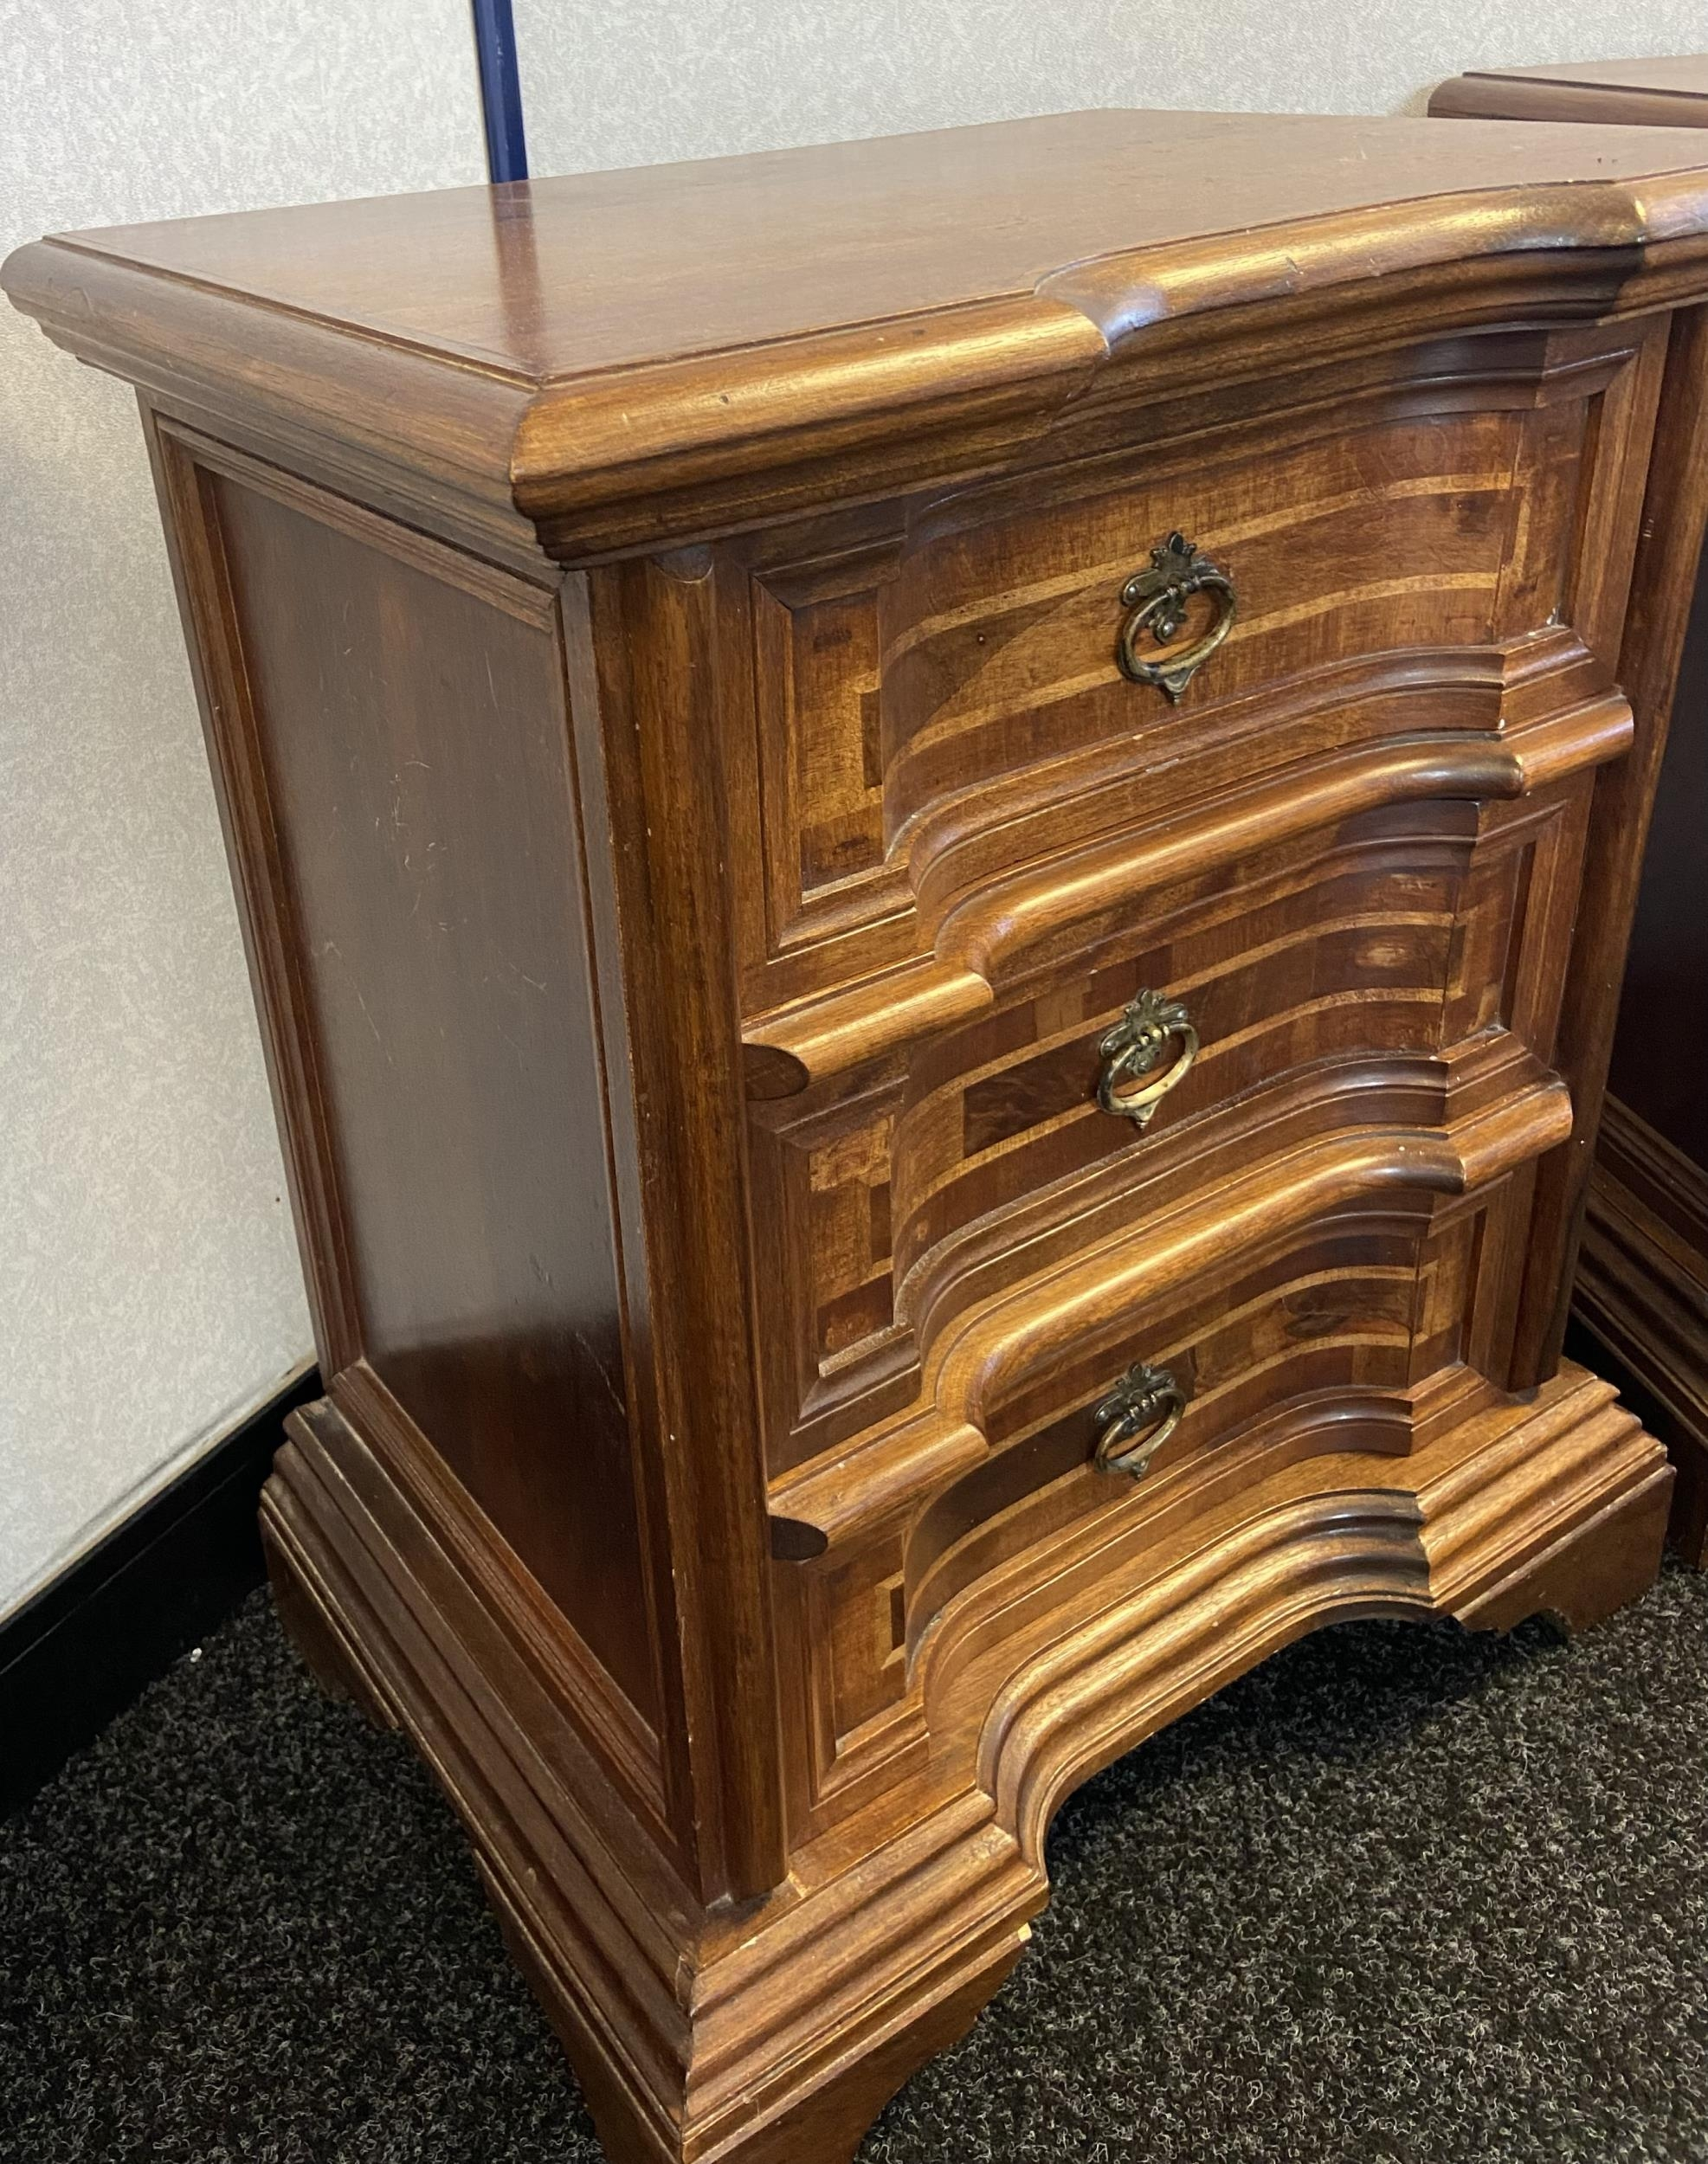 A Pair of reproduction antique style three drawer bedside chests. [68x60x40cm] - Image 4 of 4